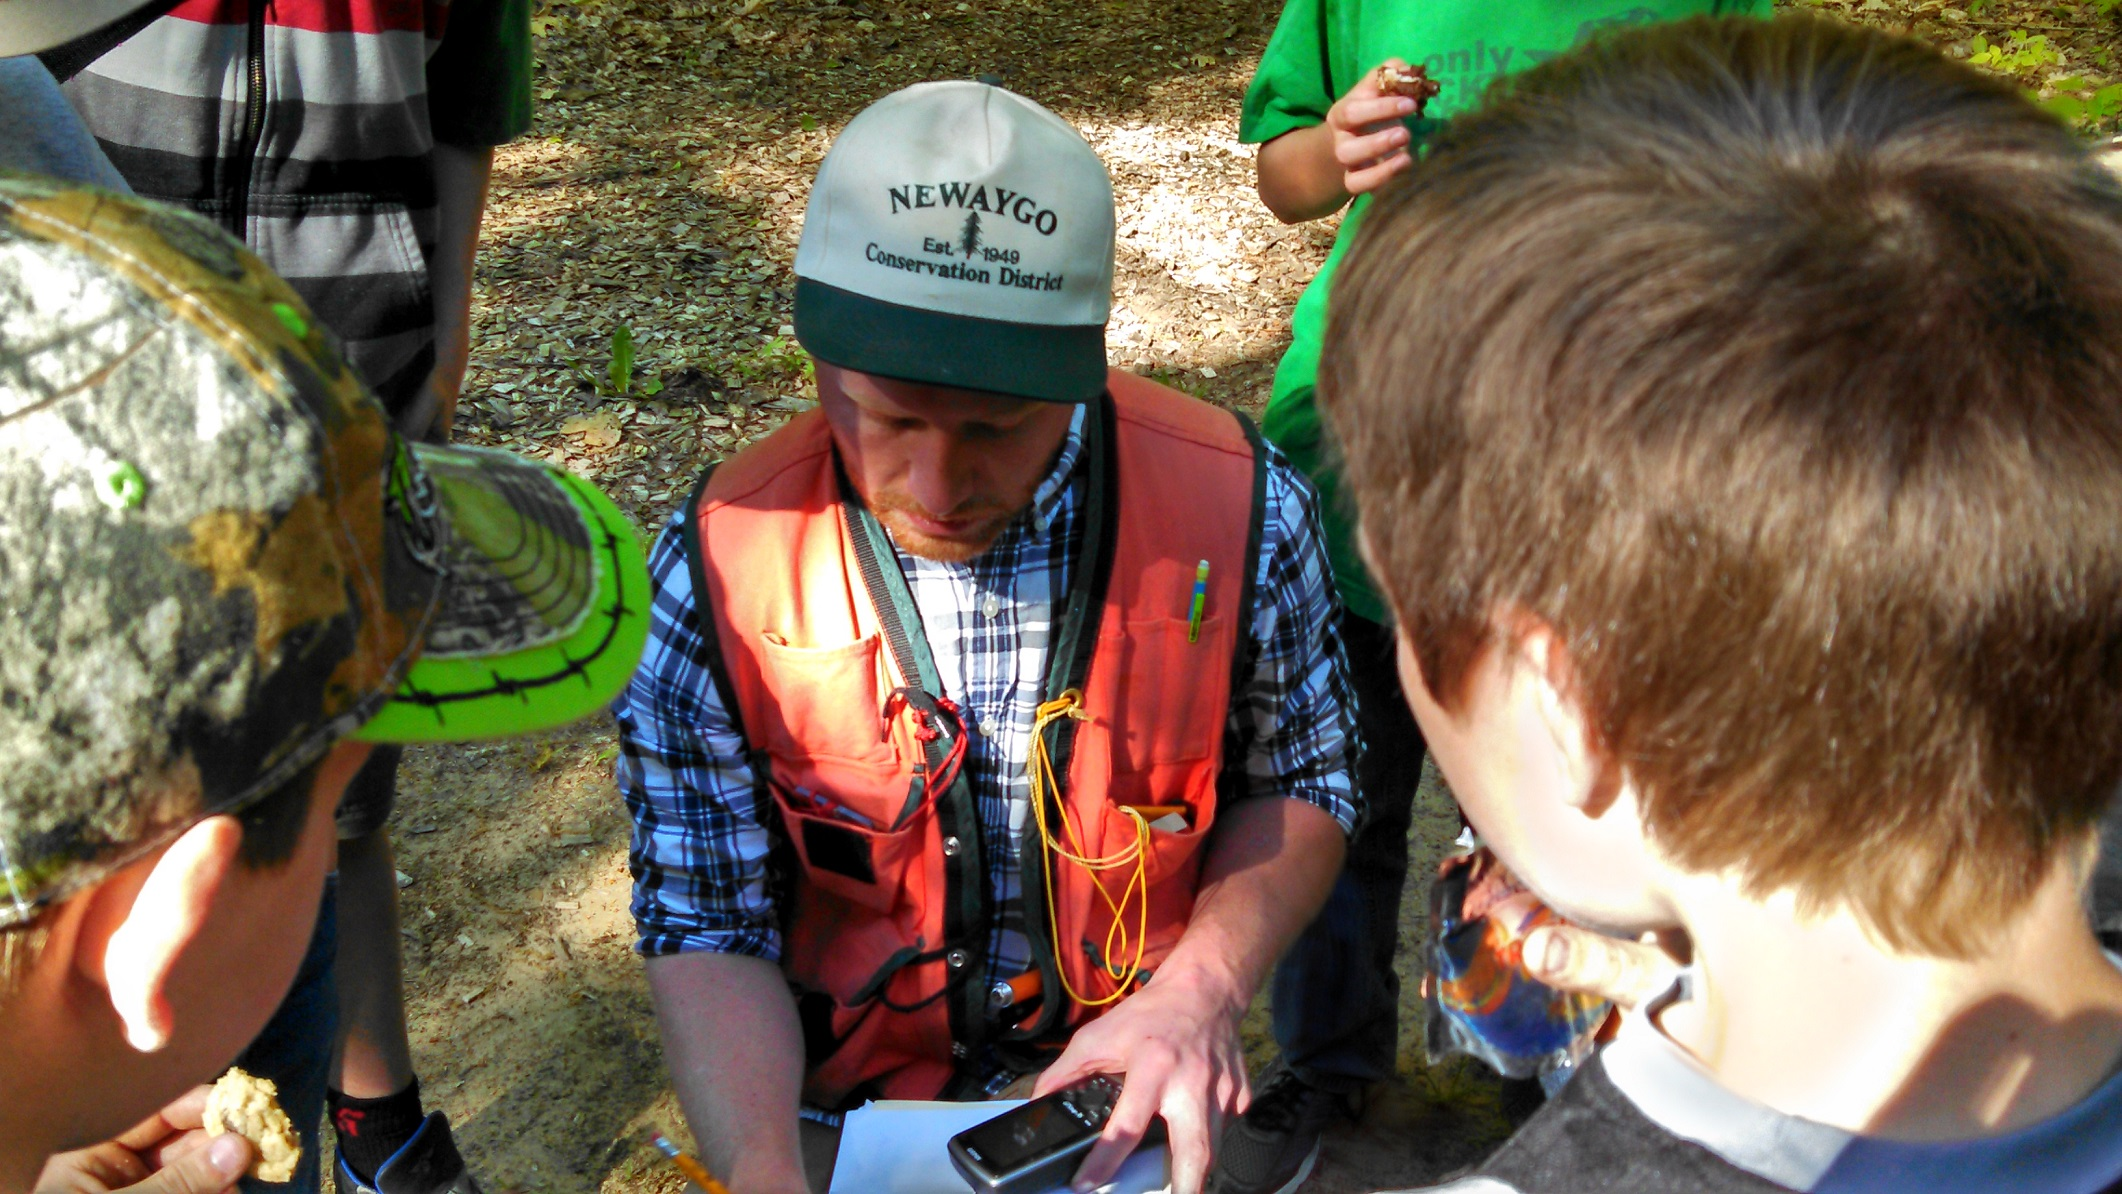 District Forester AJ Smith explains GPS systems to the Newaygo County Boy Scouts